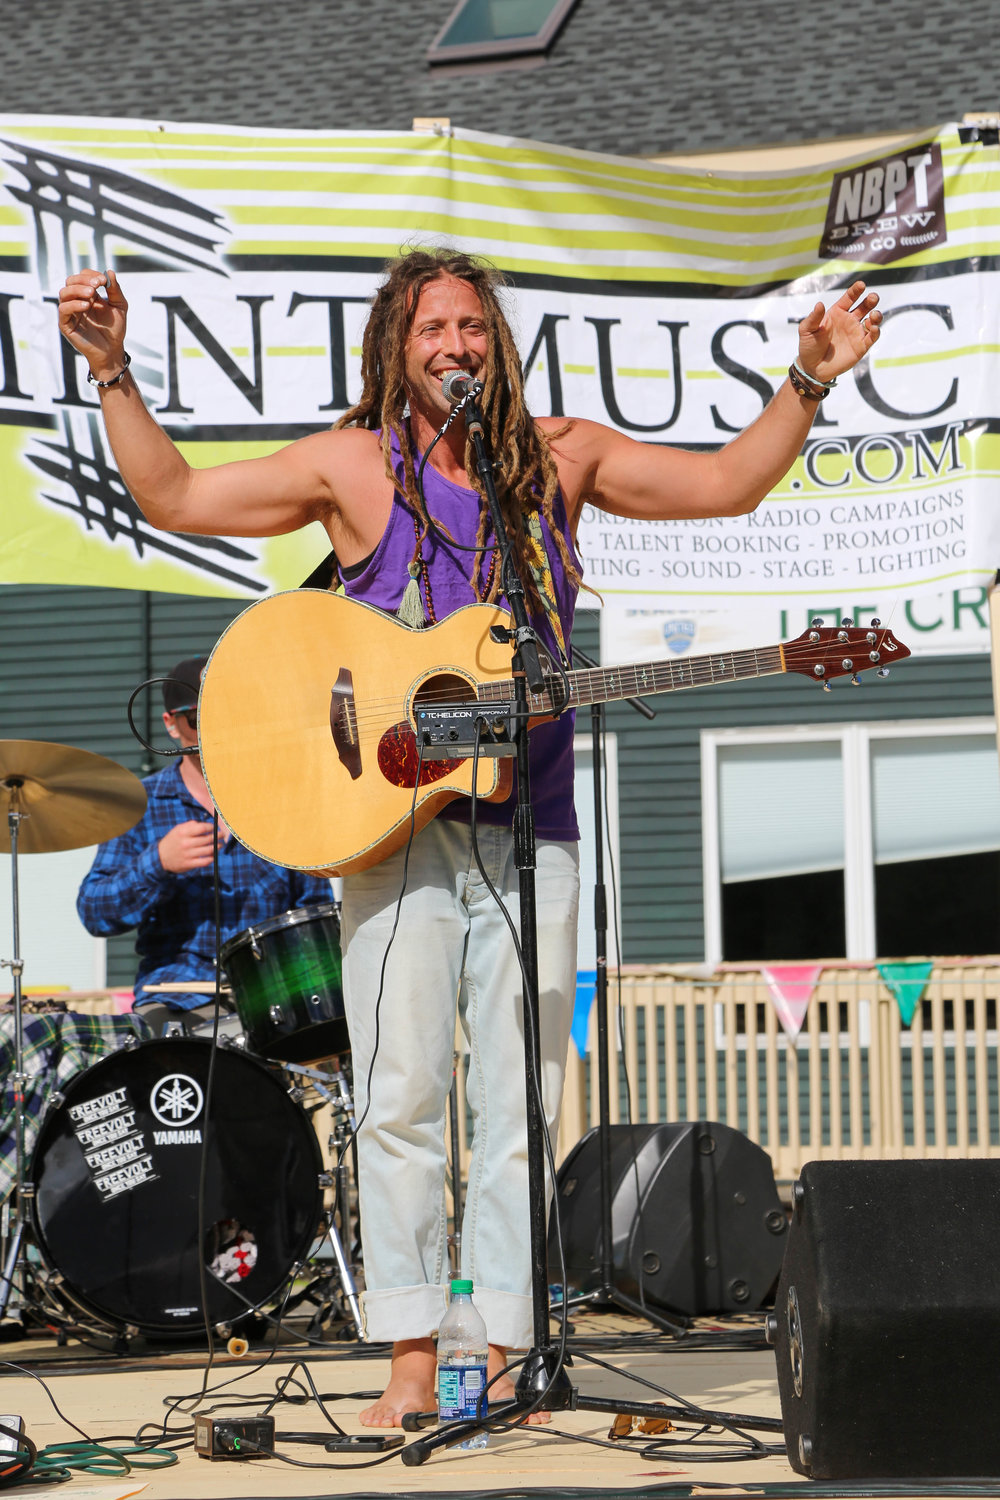 Michael Bernier is the host/Emcee at local events like the Green stride NBPT Half marathon. You might also see him playing alongside his Freevolt Bandmates at a local venue like the  nbpt Brewing company